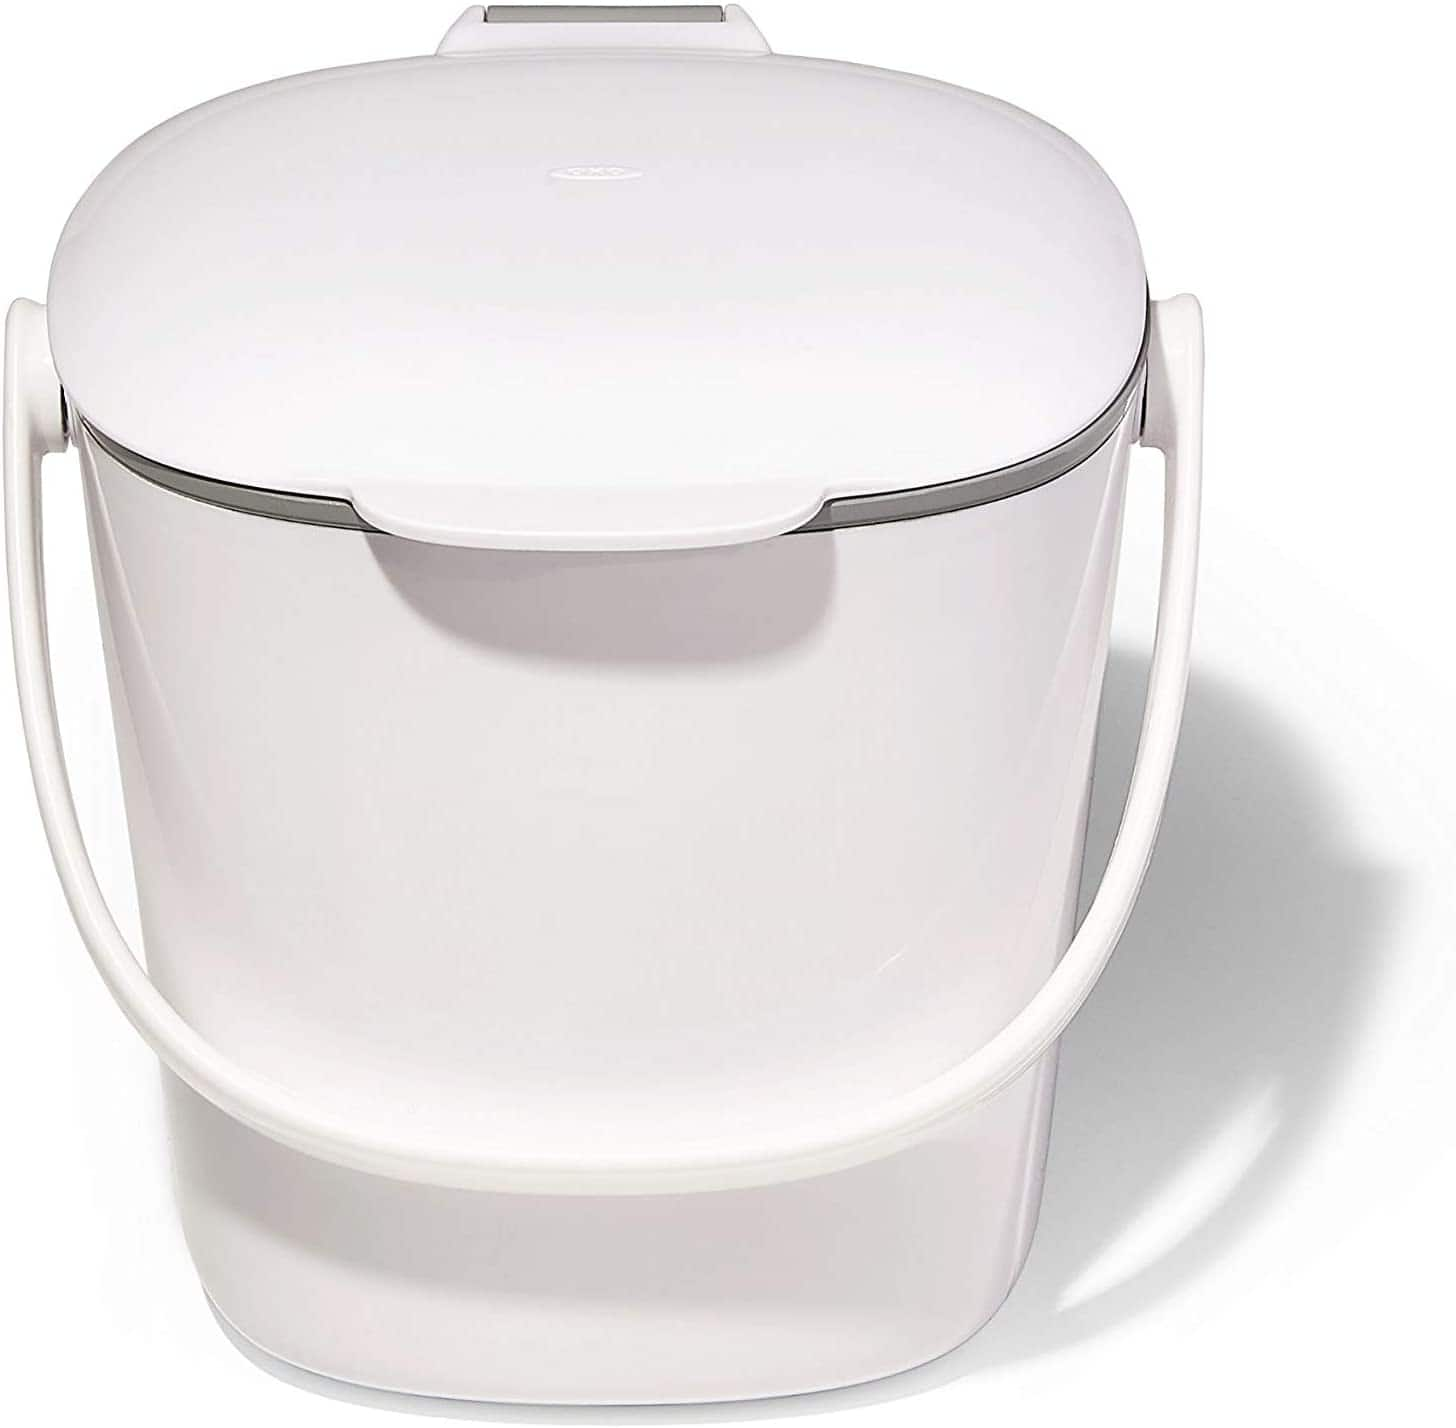 Oxo Good Grips 0.75-Gallon Kitchen Compost Bin (White) $11.90 at Macy's w/ Free Store Pickup